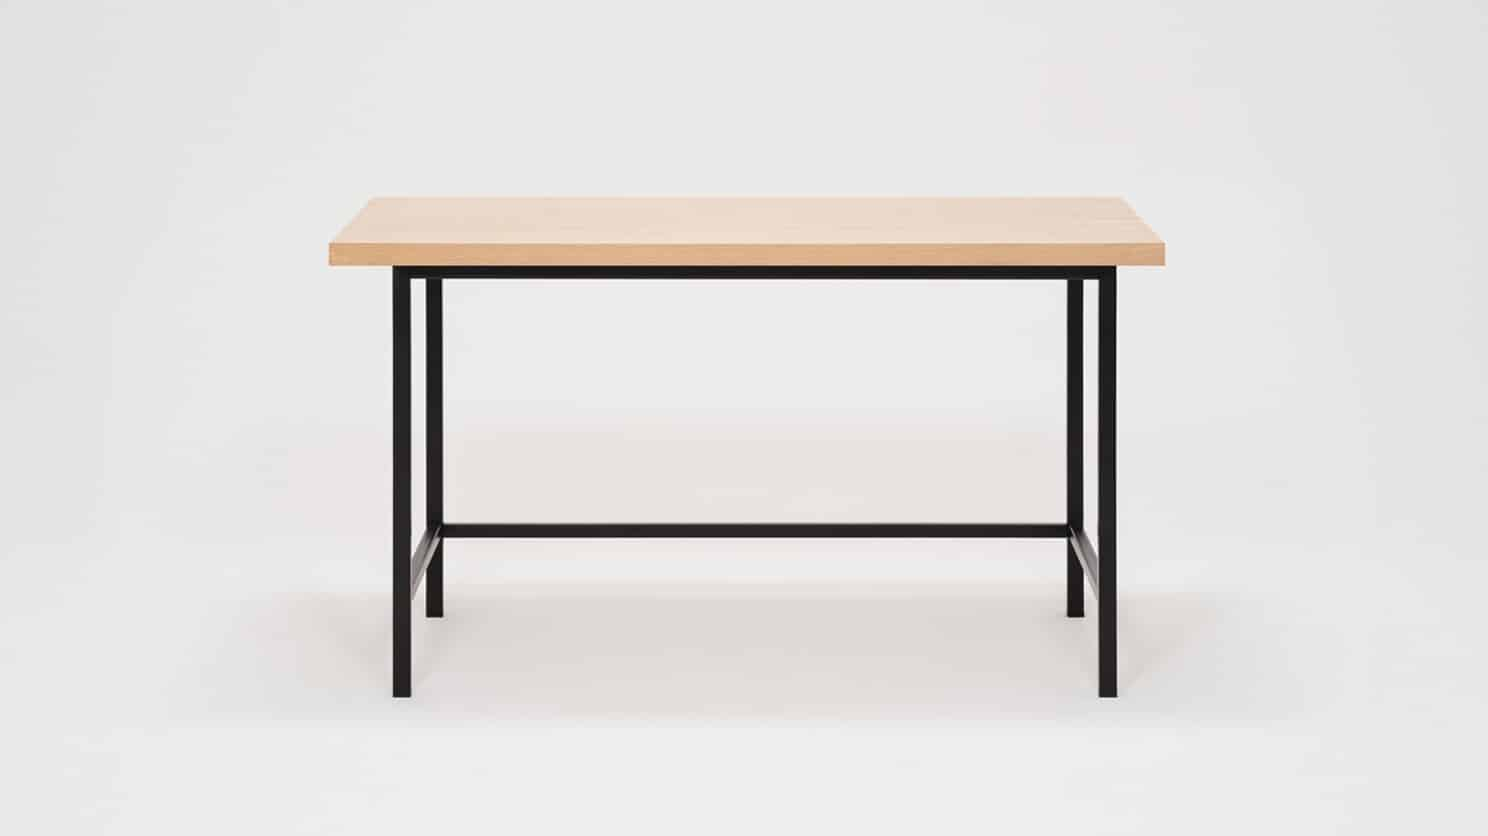 7060 307 opar 1 desks kendall desk oak black back 01